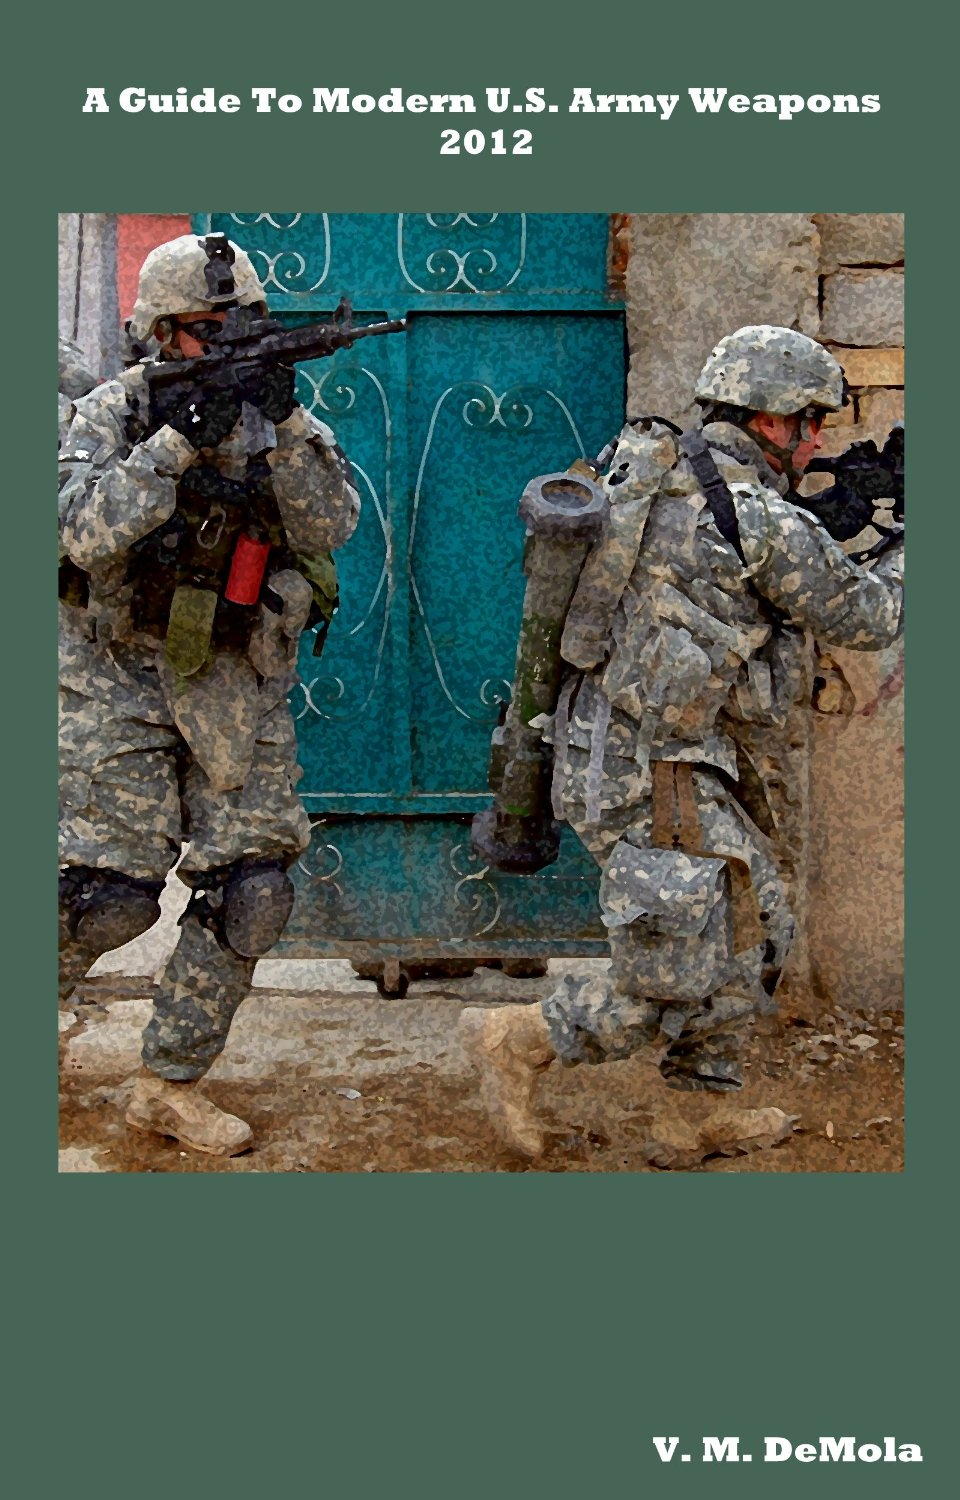 A Guide To Modern U.S. Army Weapons free download